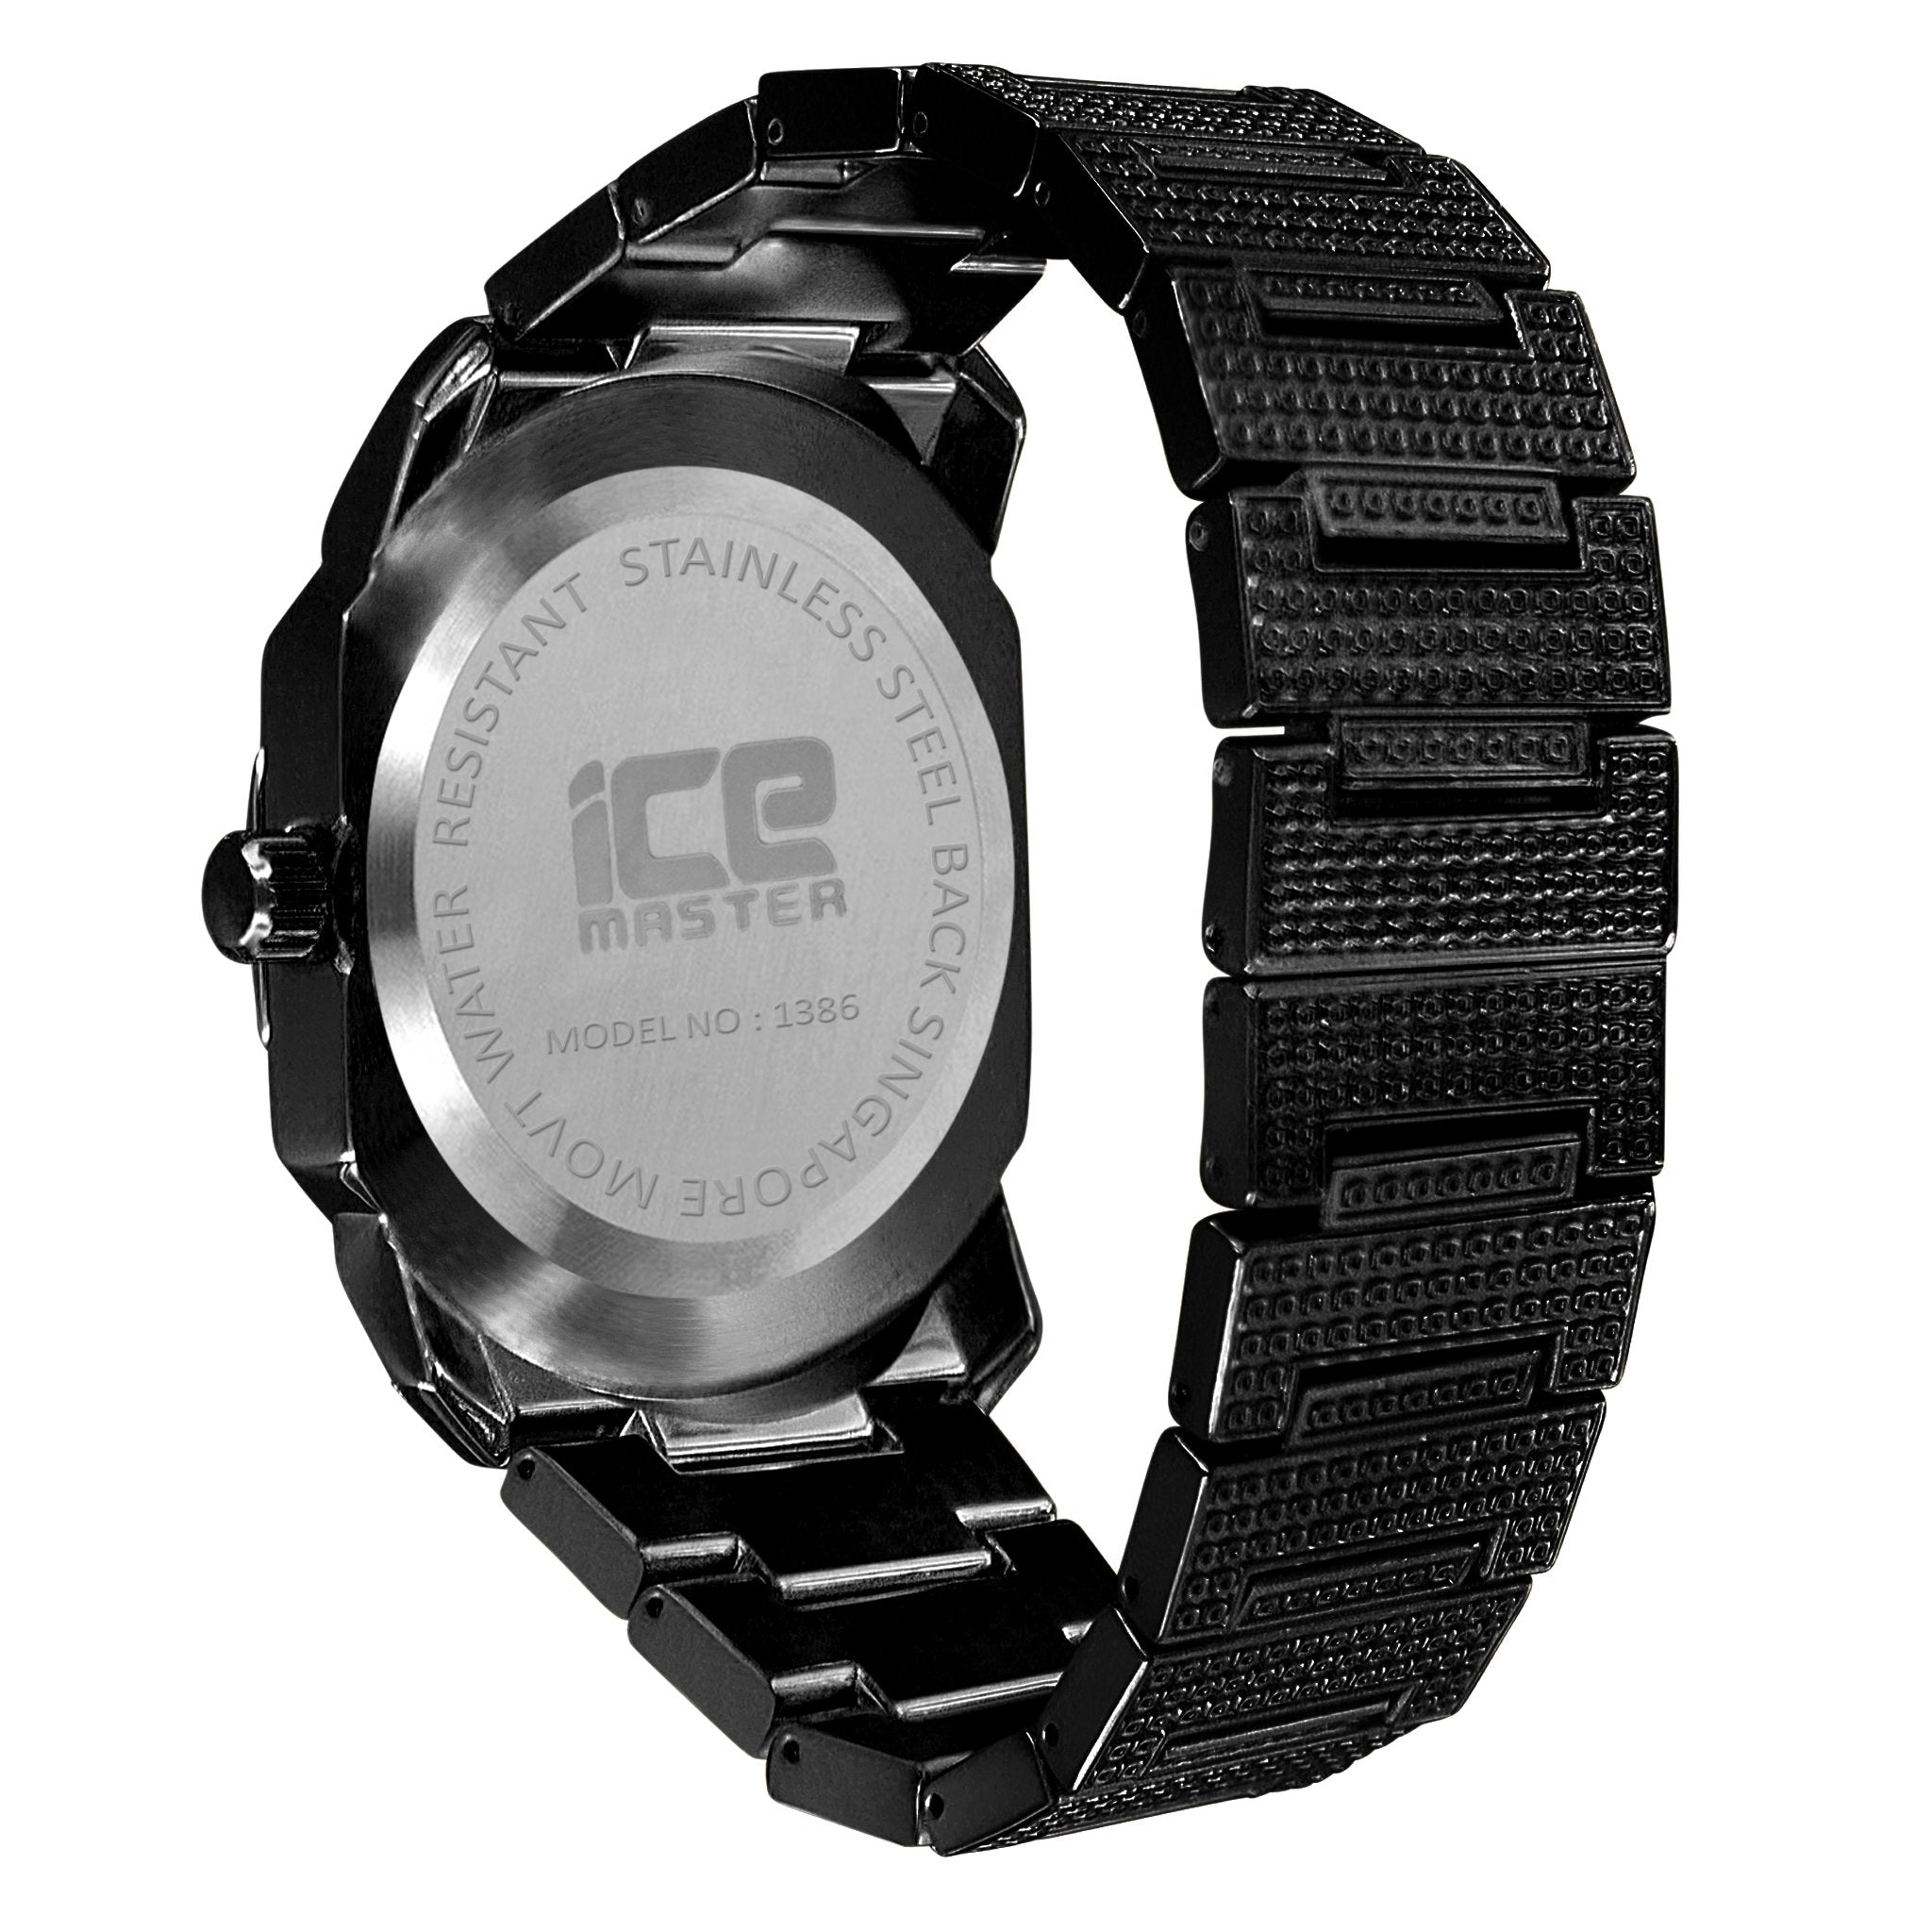 BELVEDERE Ice Master Watch | 562273